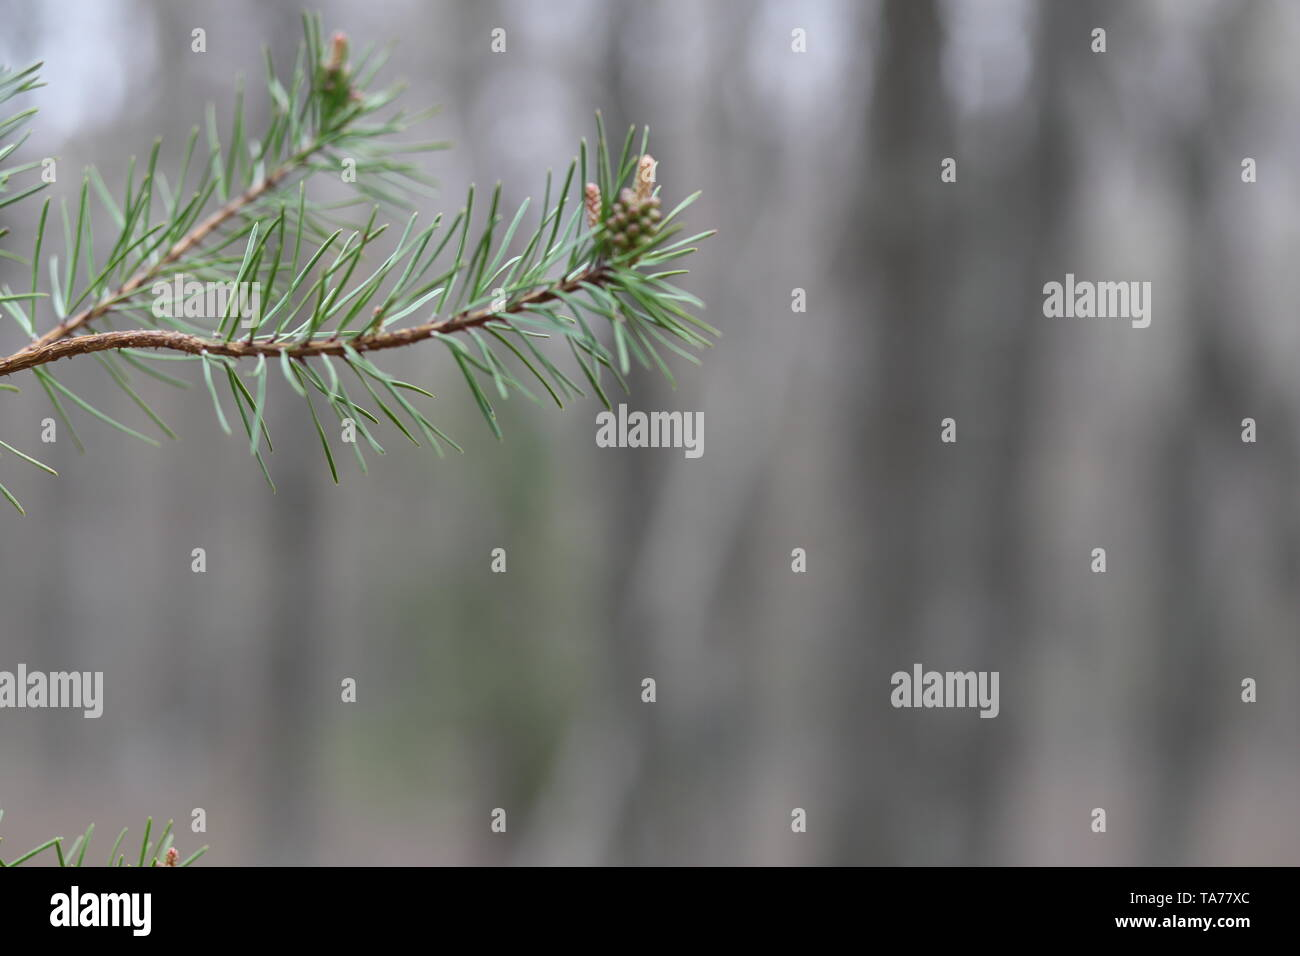 Closeup of a pine branch against a blurred background of trees - Stock Image